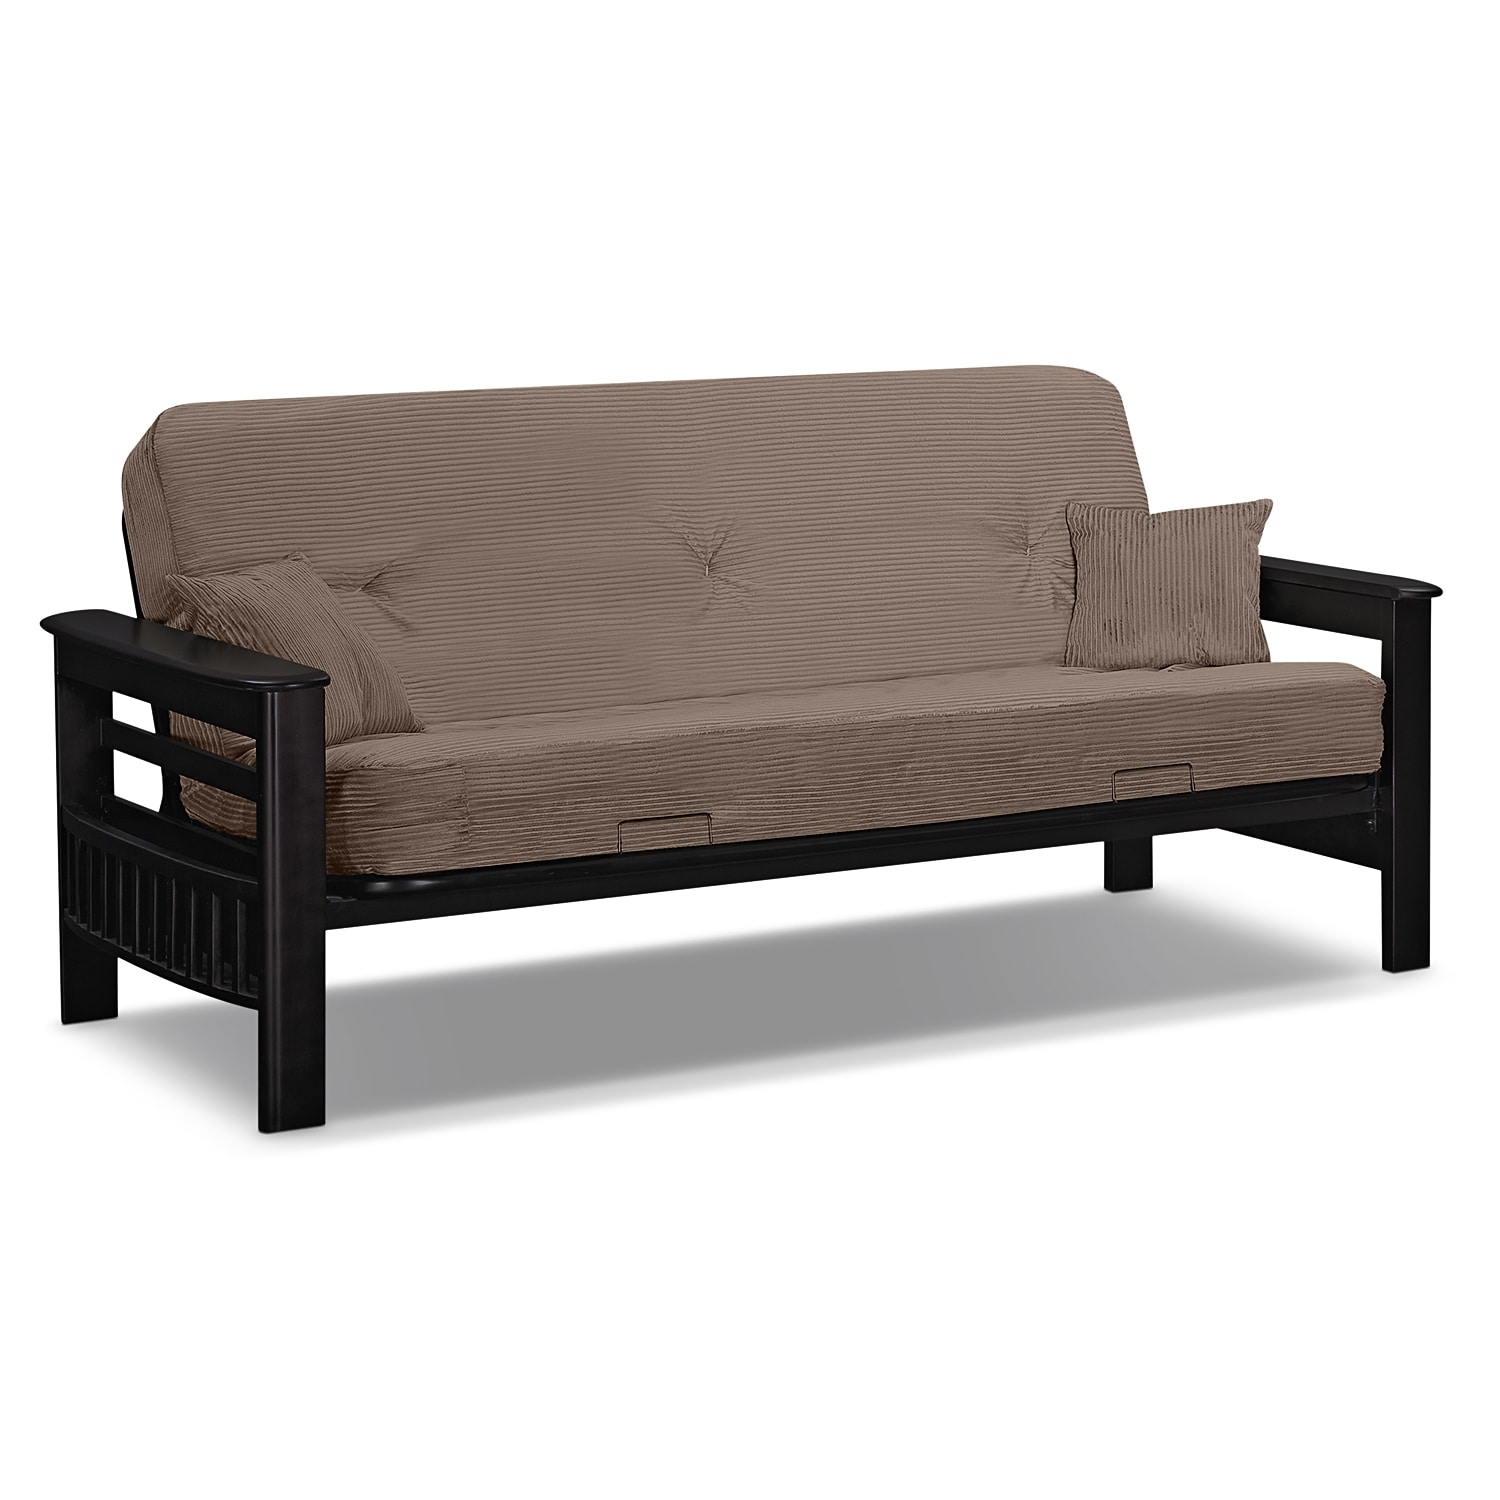 Futons Living Room Seating Value City Furniture and Mattresses